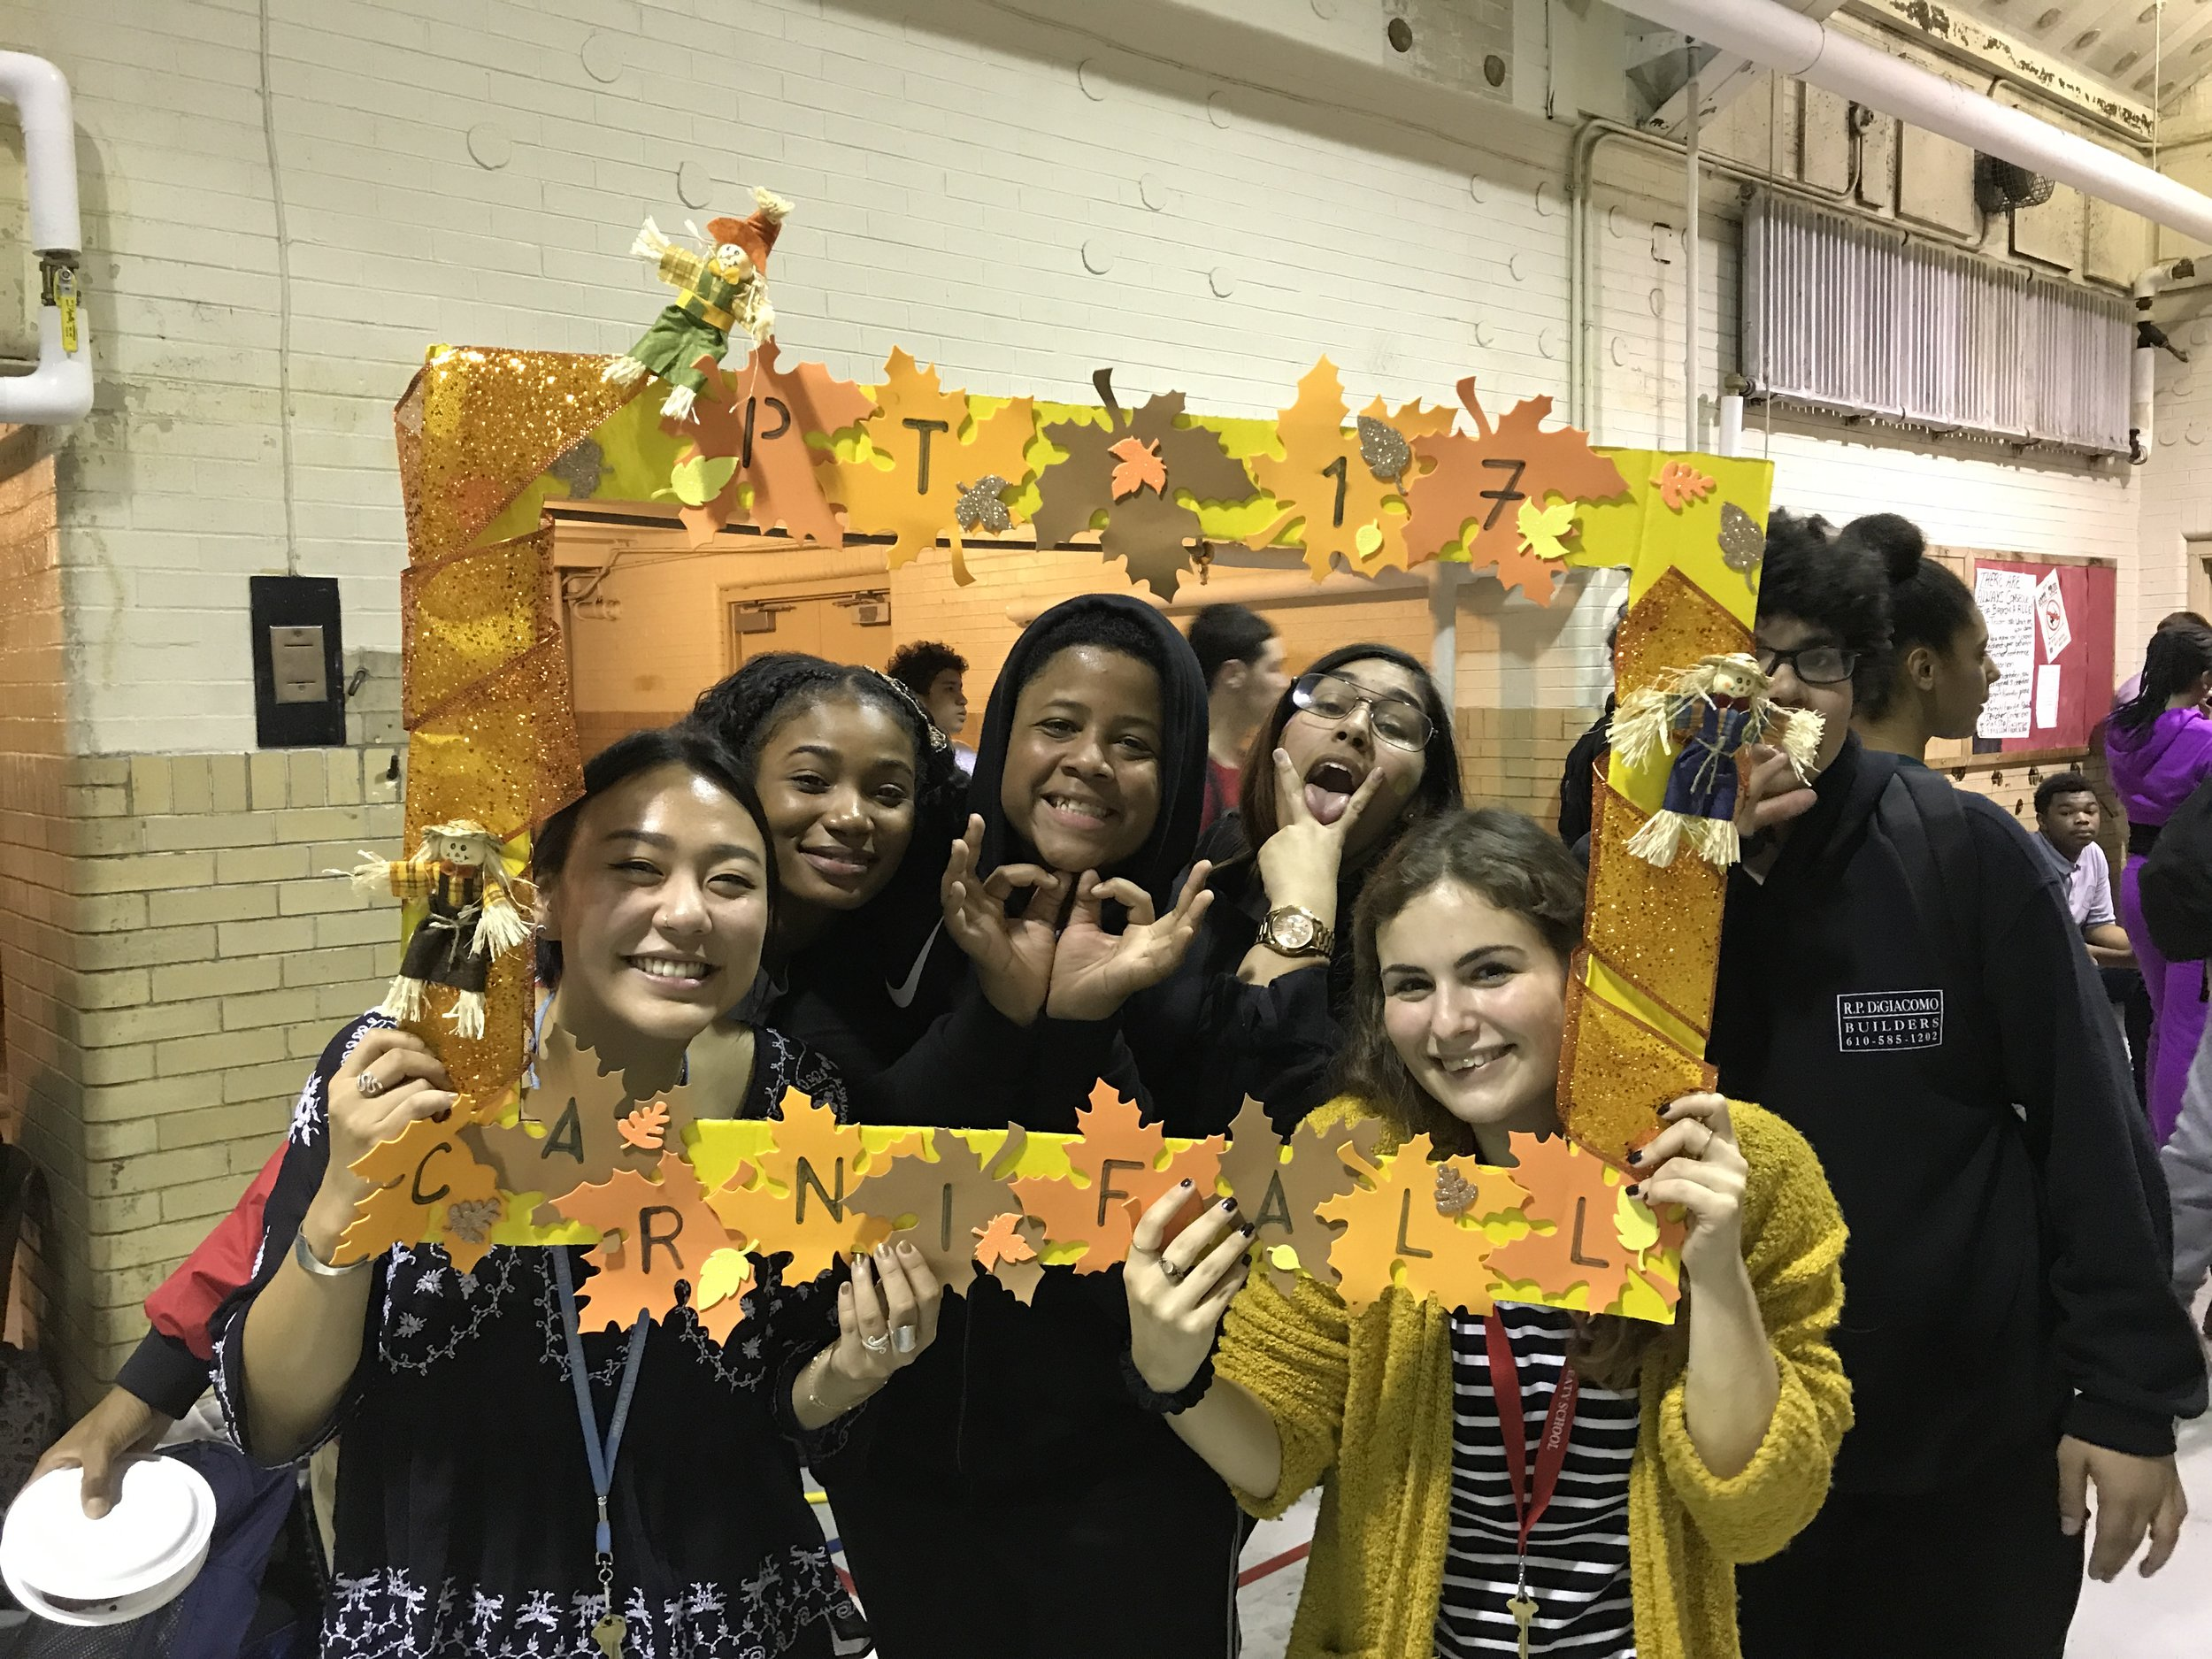 Danielle celebrates students with over 95% attendance at Penn Treaty's Carni-fall party